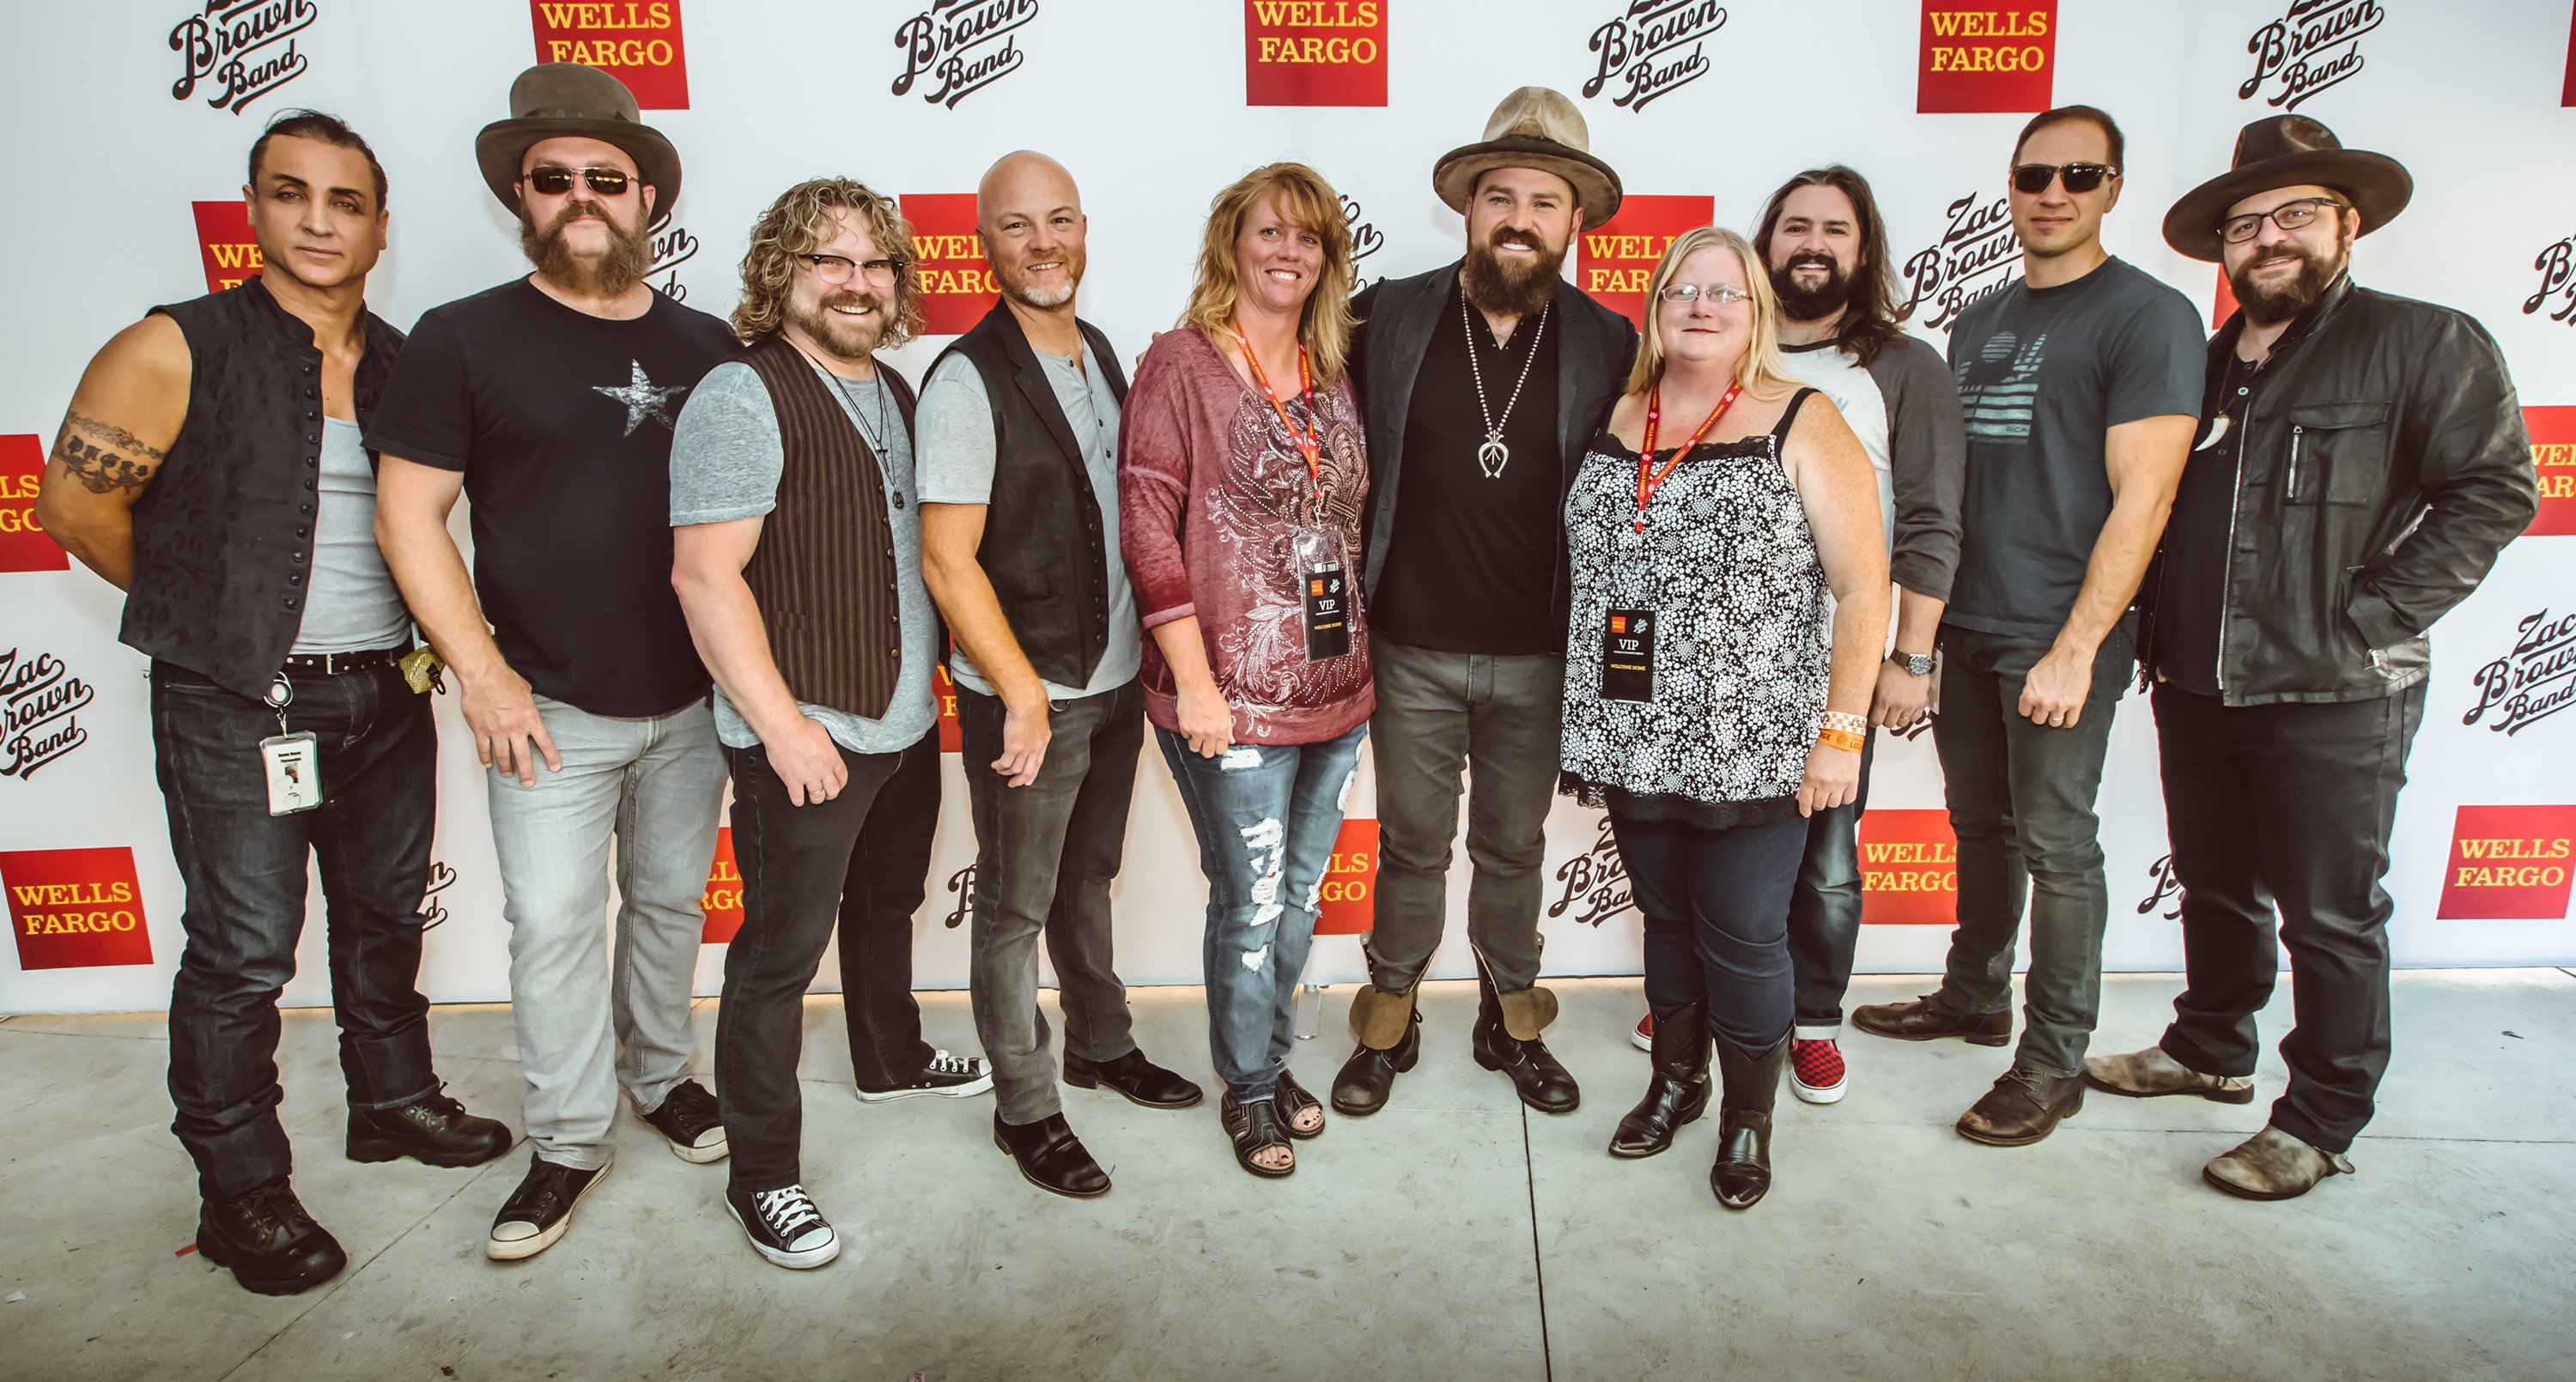 Thank you messages to veteran tickets foundation donors shannon attended zac brown band with special guest darrell scott vip experience on aug 25th m4hsunfo